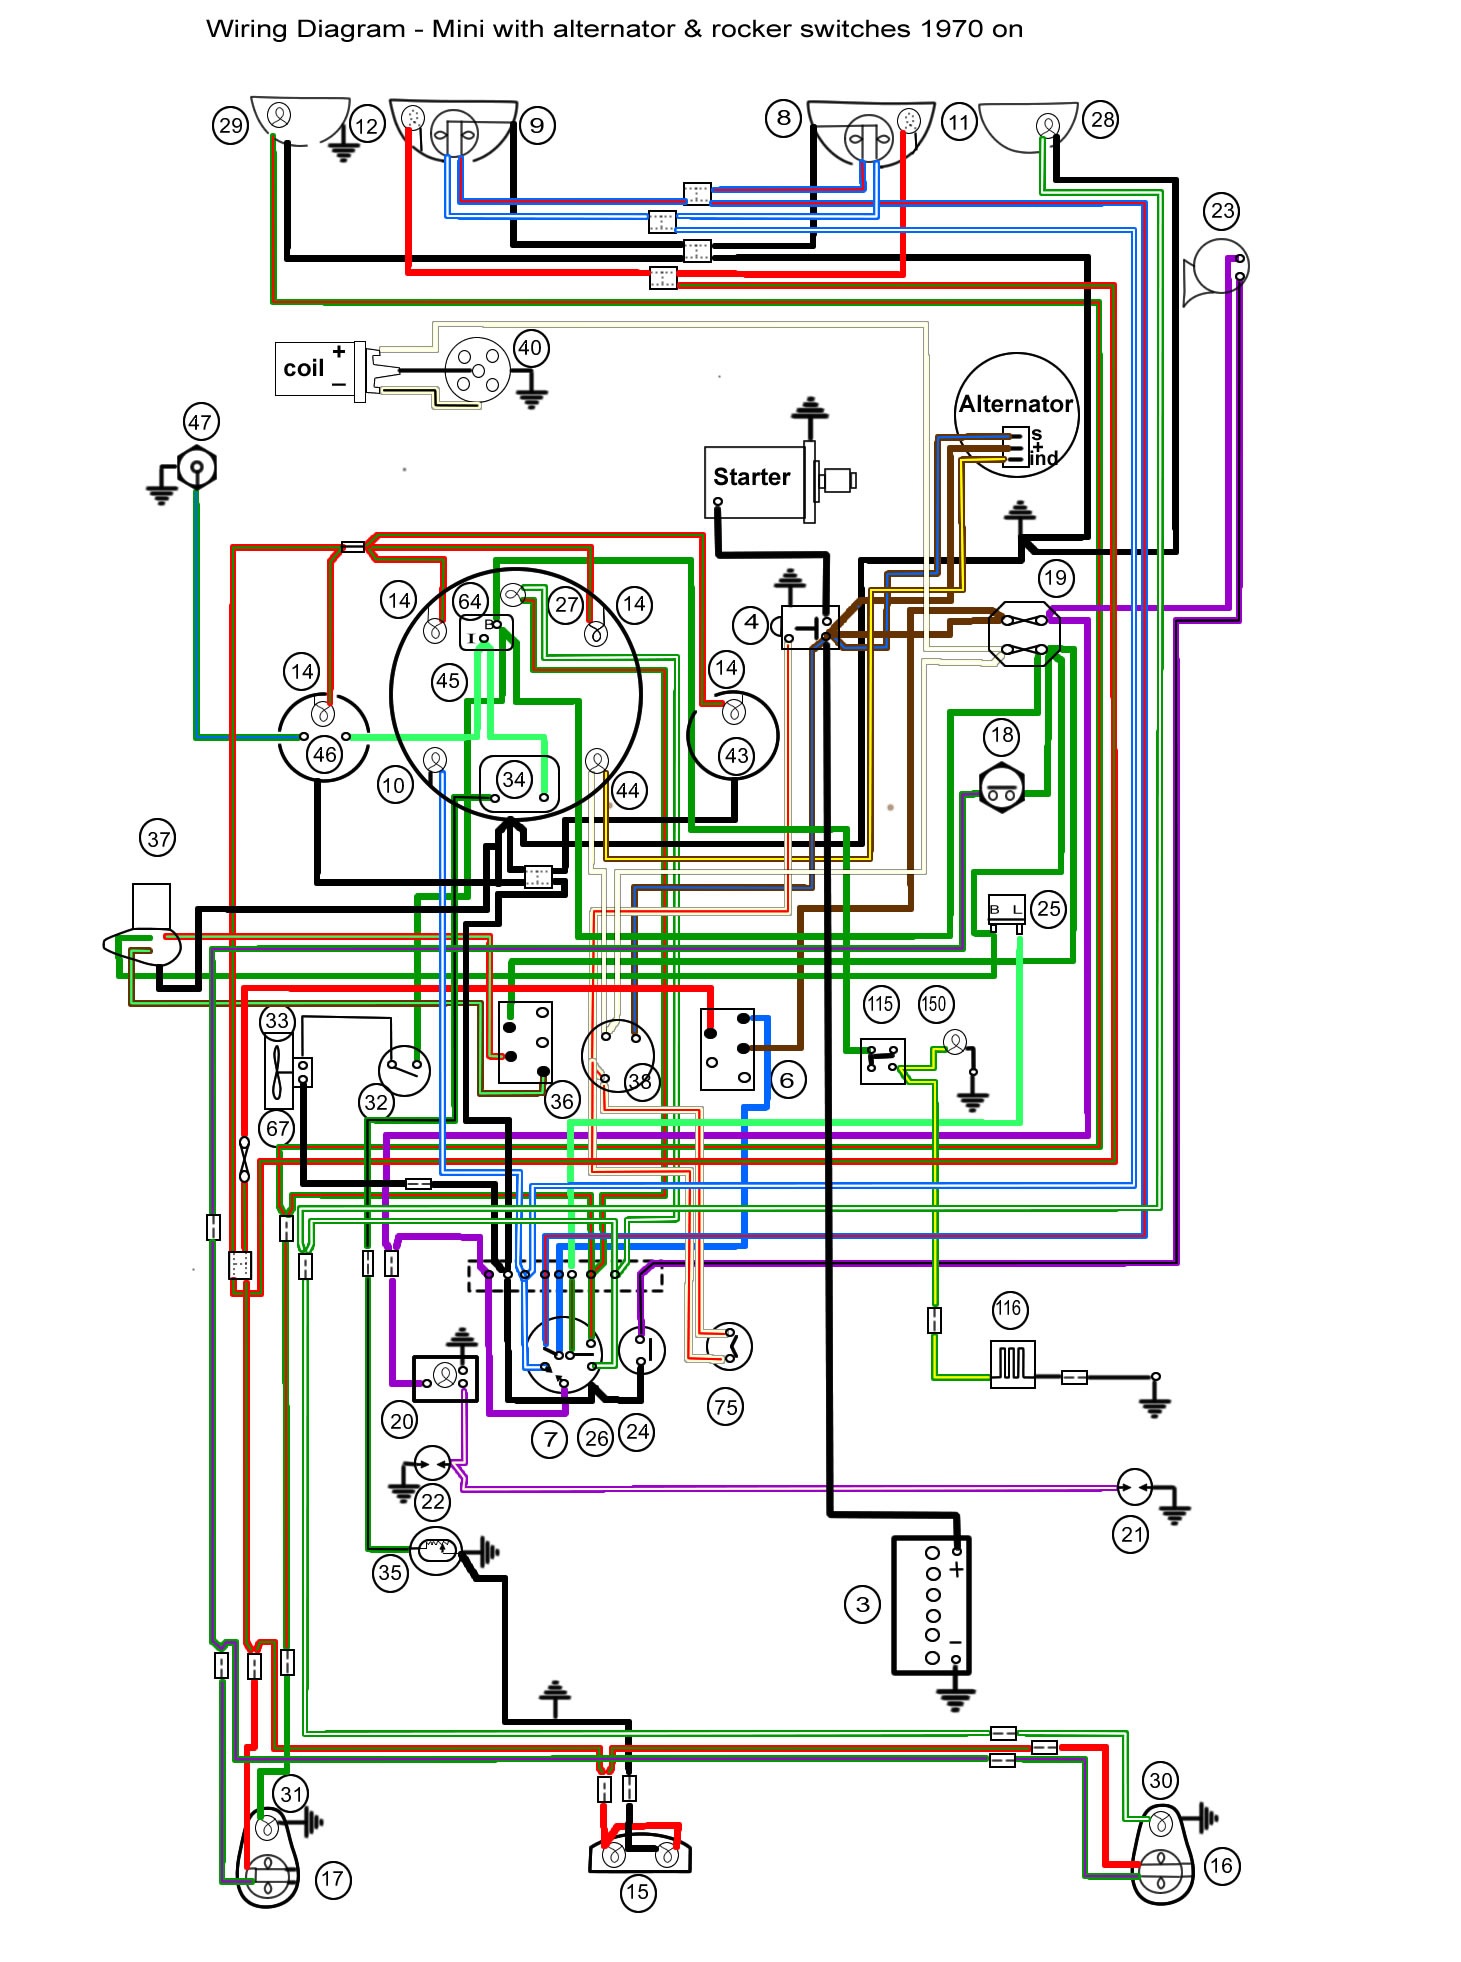 s4 mini schematic diagram minifinity the classic mini forum and resource | • view ... #7